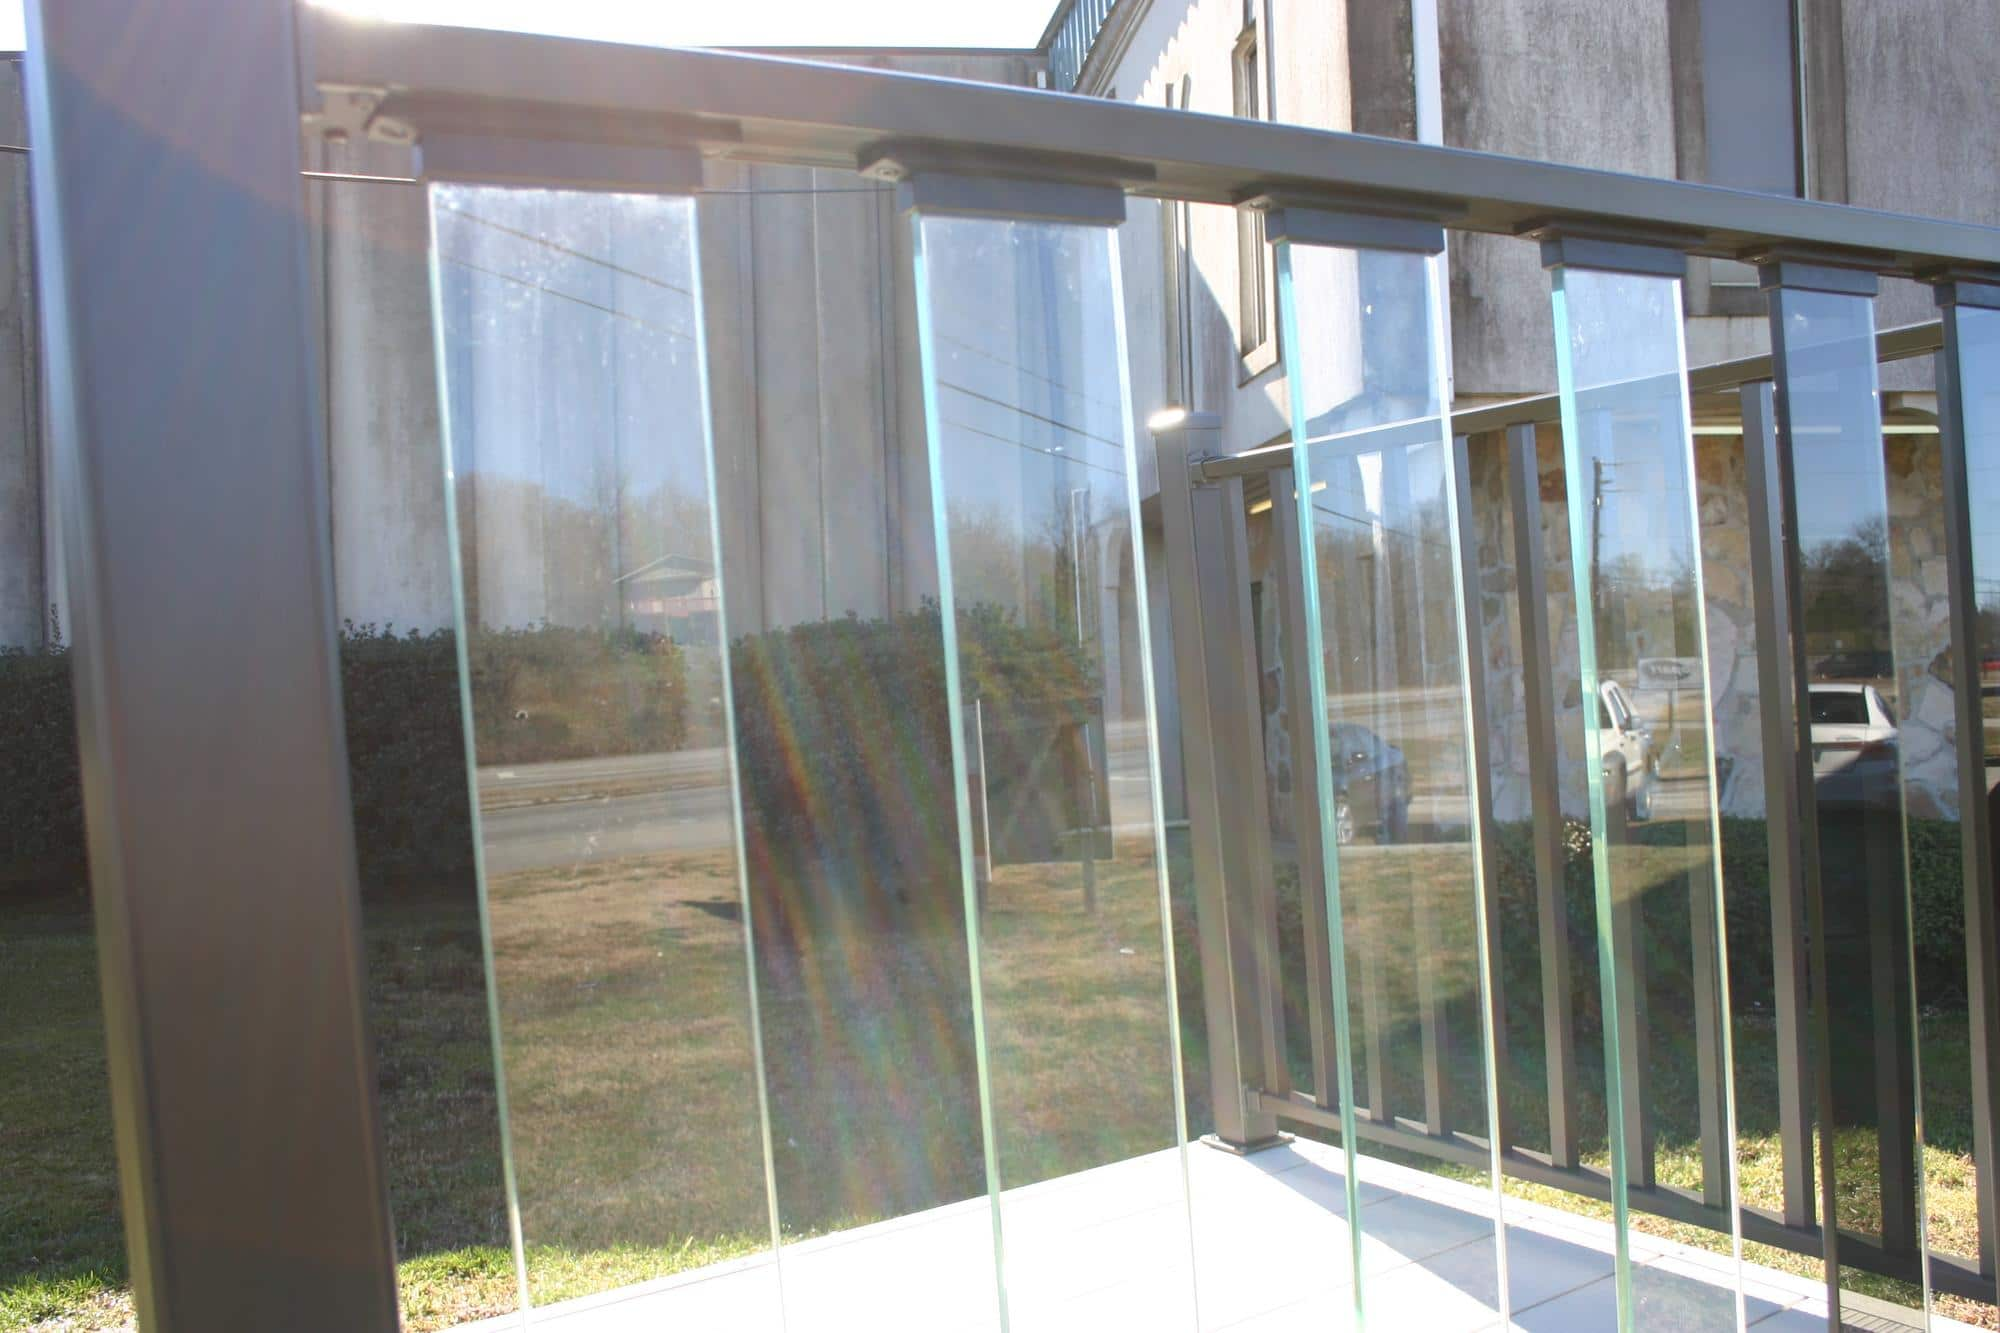 Glass railings for decks - Wahoo Glass Rail Is A Nearly Maintenance Free Aluminum Deck Railing System With Glass Pickets That Will Not Rot Splinter Or Weaken With Time